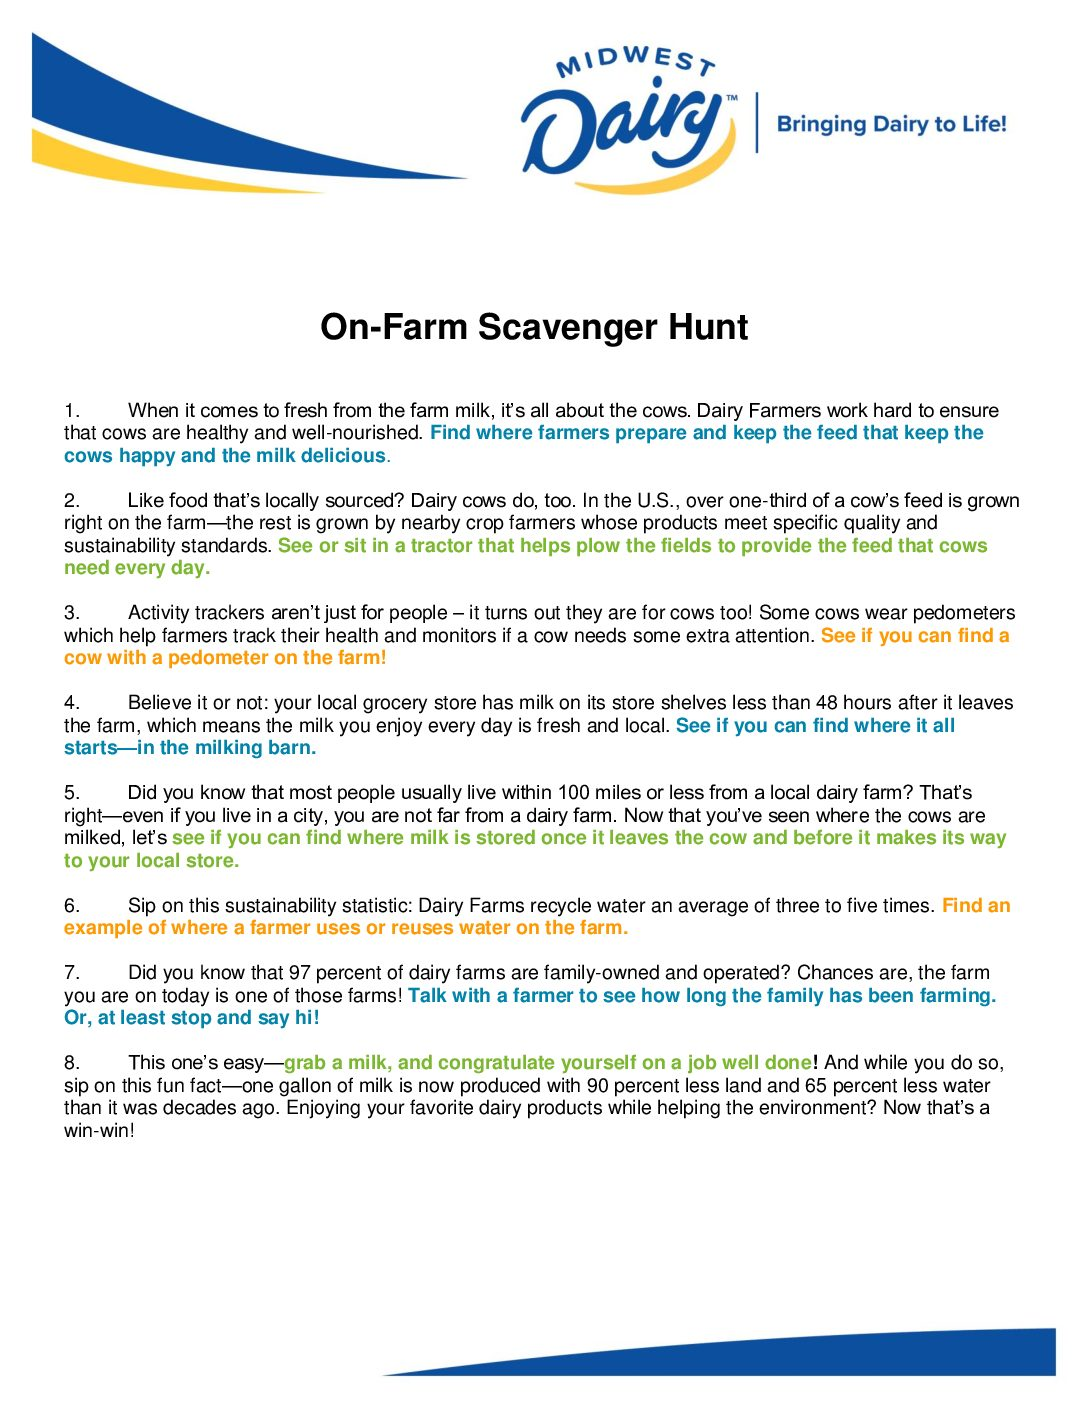 Scavenger Hunt – Midwest Dairy